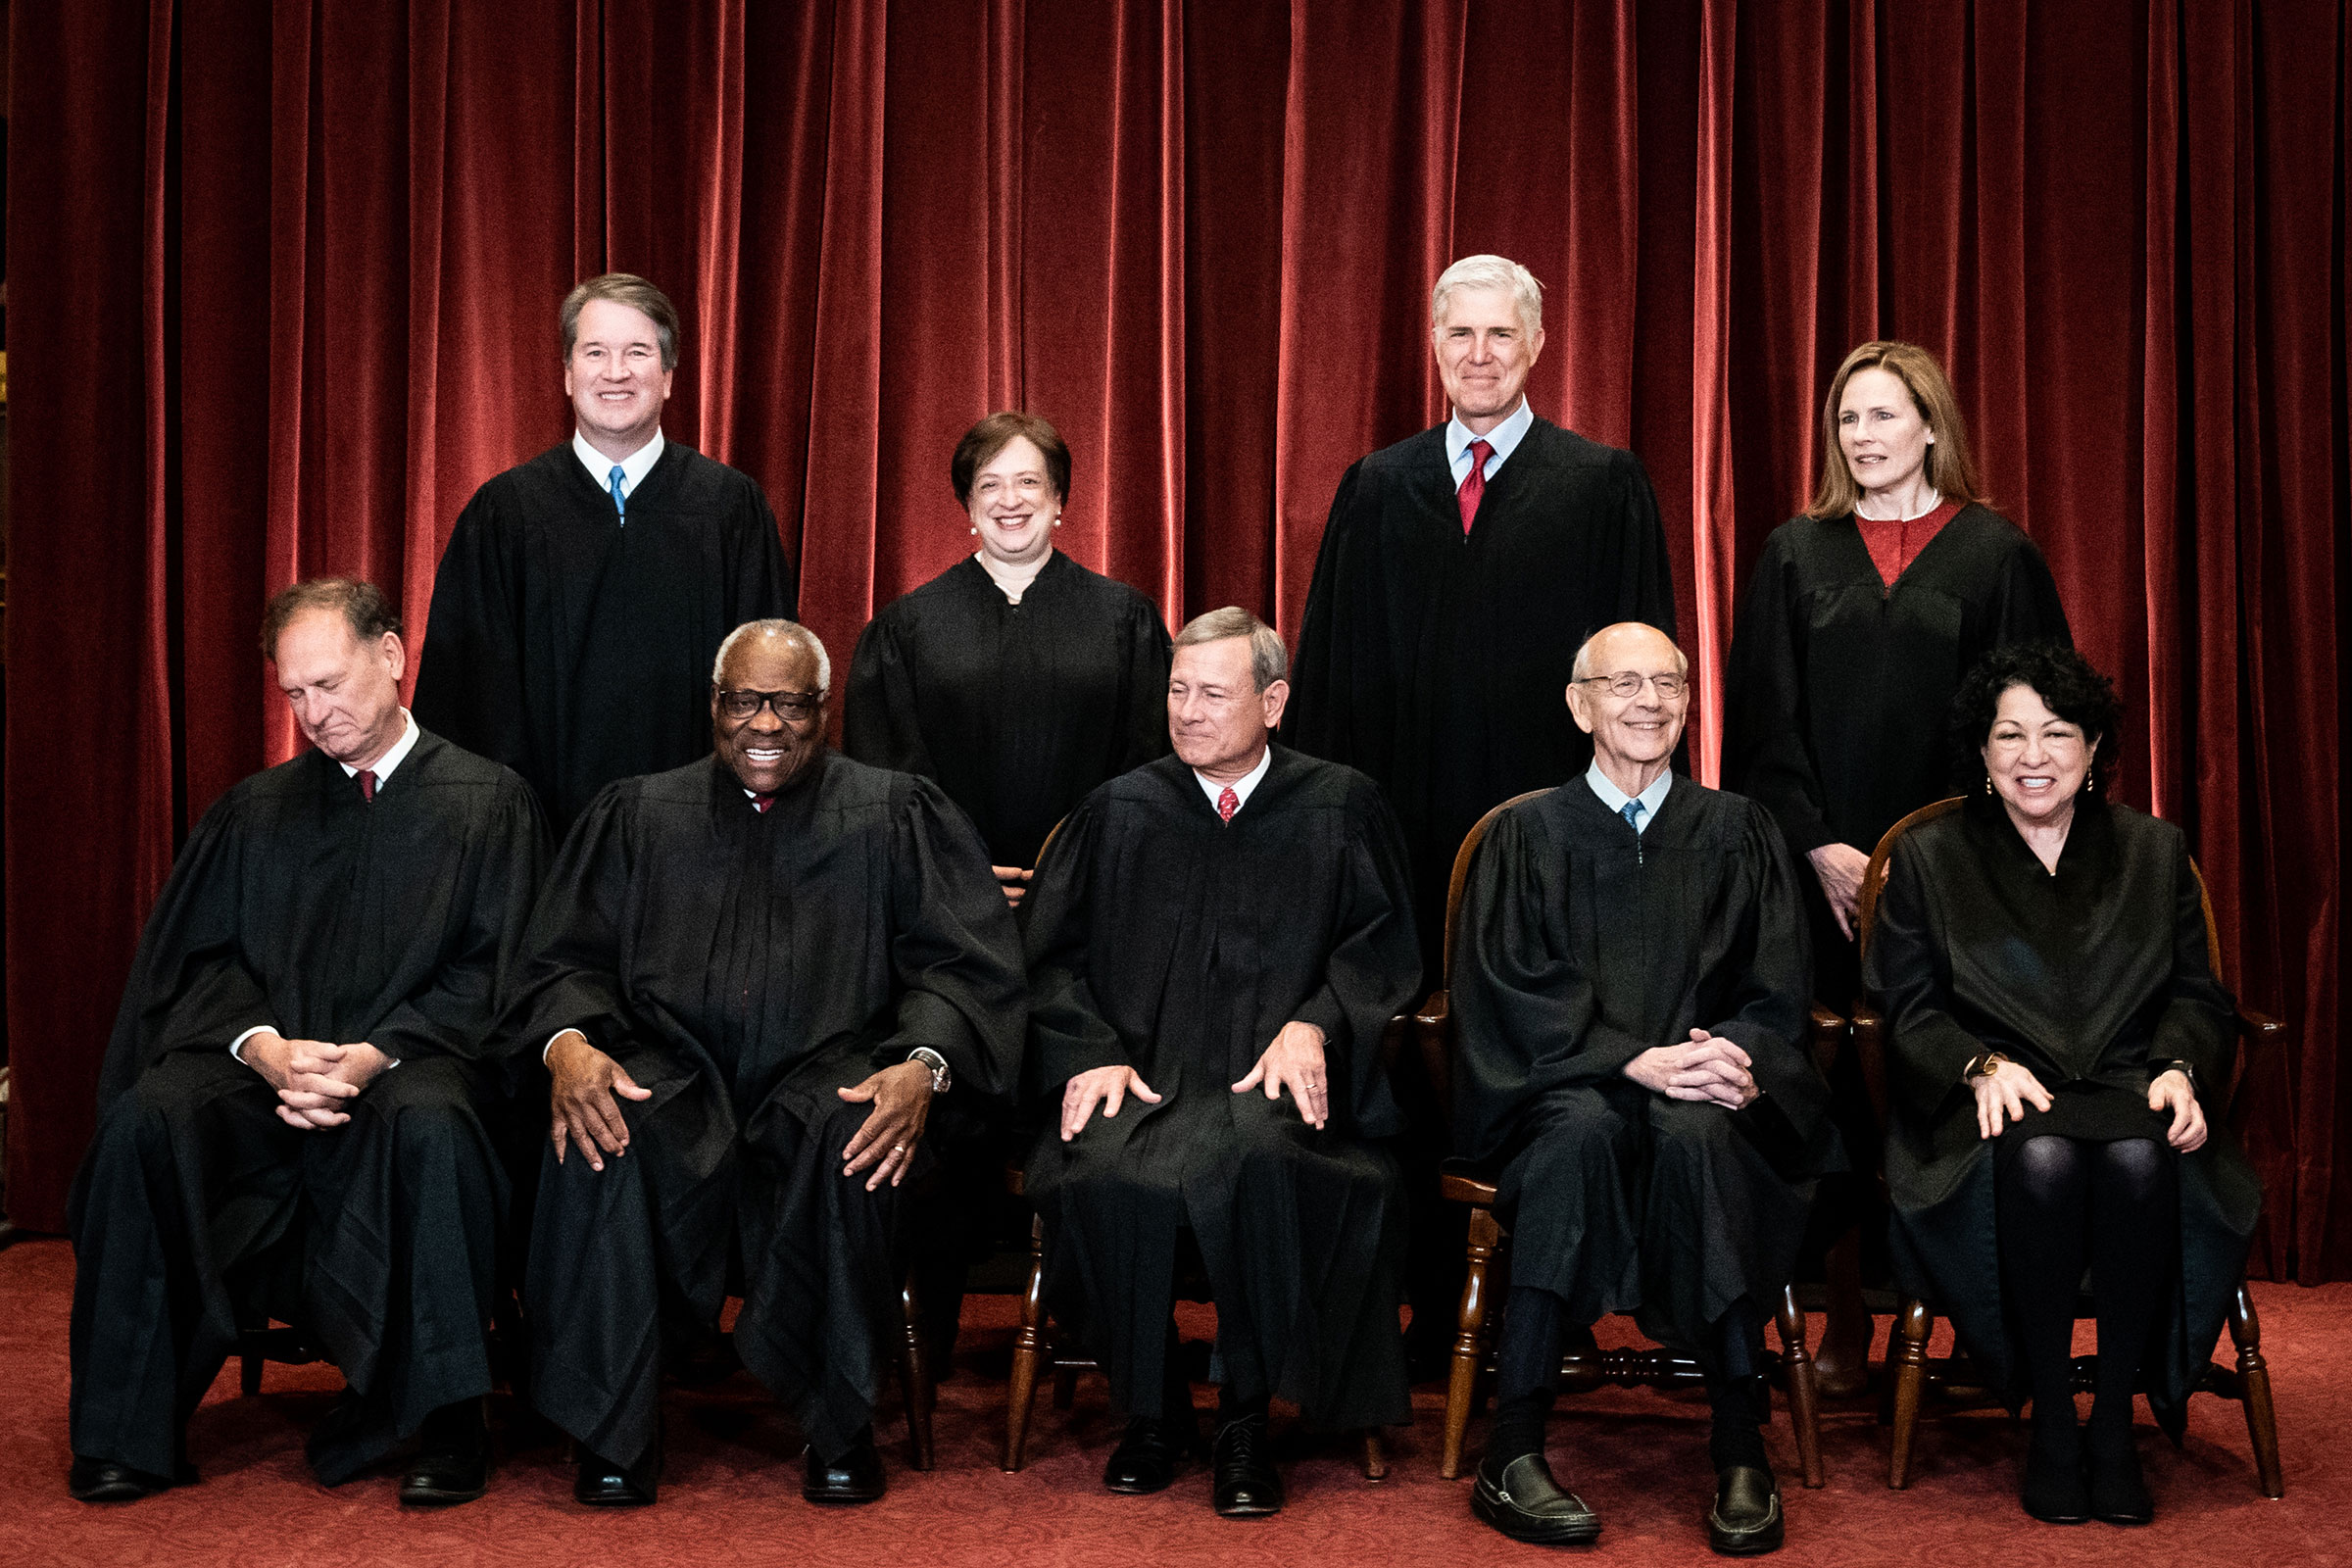 Justices of the U.S. Supreme Court during a formal group photograph at the Supreme Court in Washington, D.C., U.S., on Friday, April 23, 2021.